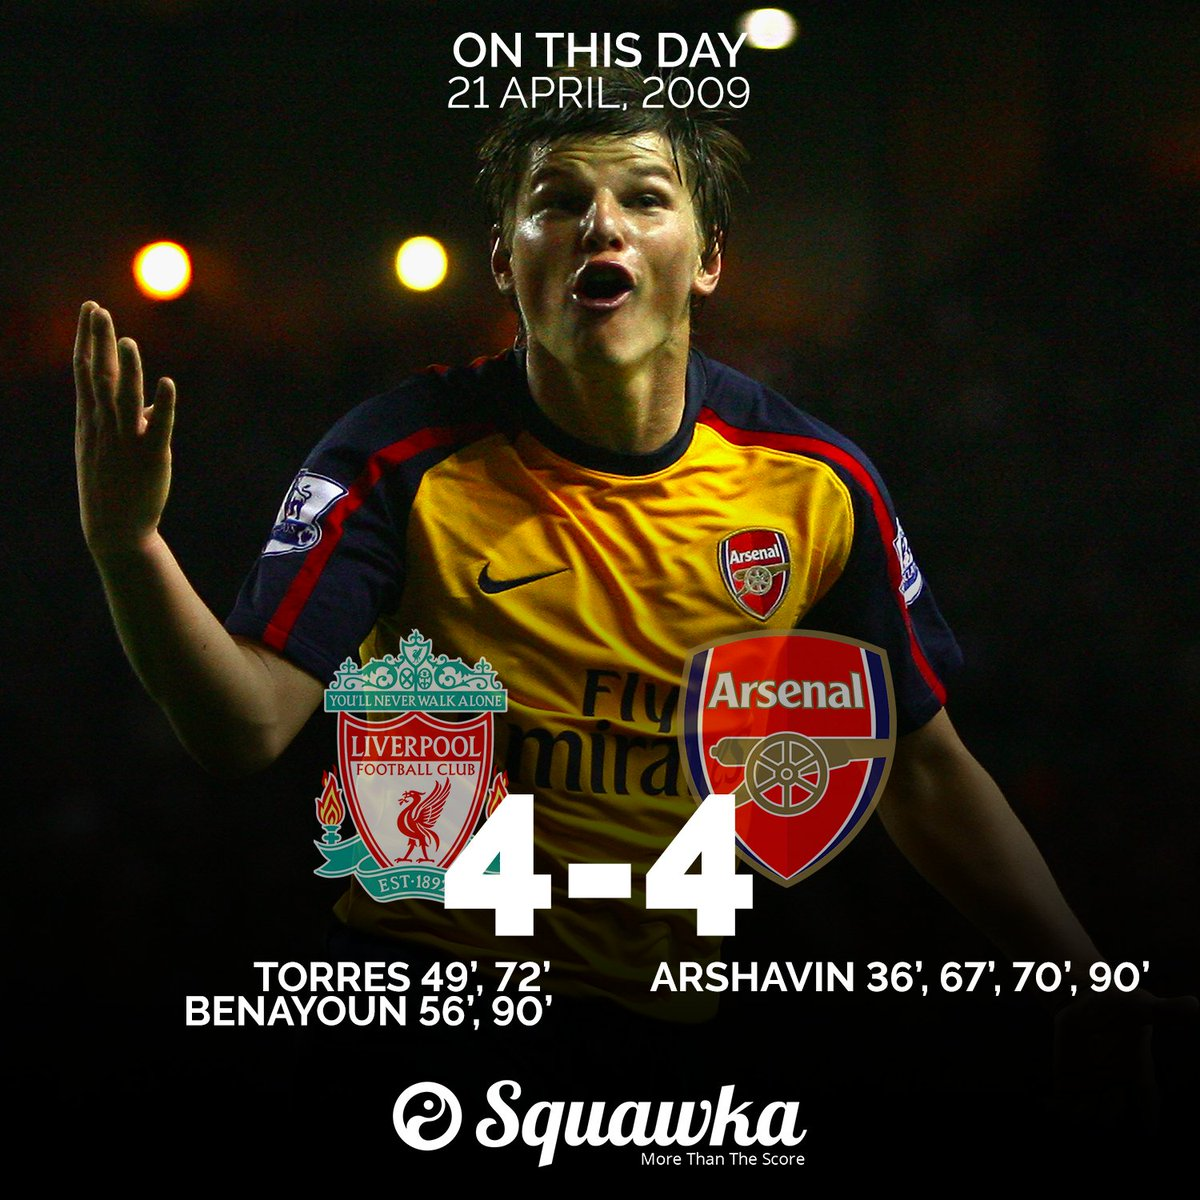 87a5b0df0 Liverpool  ON THIS DAY  In 2009